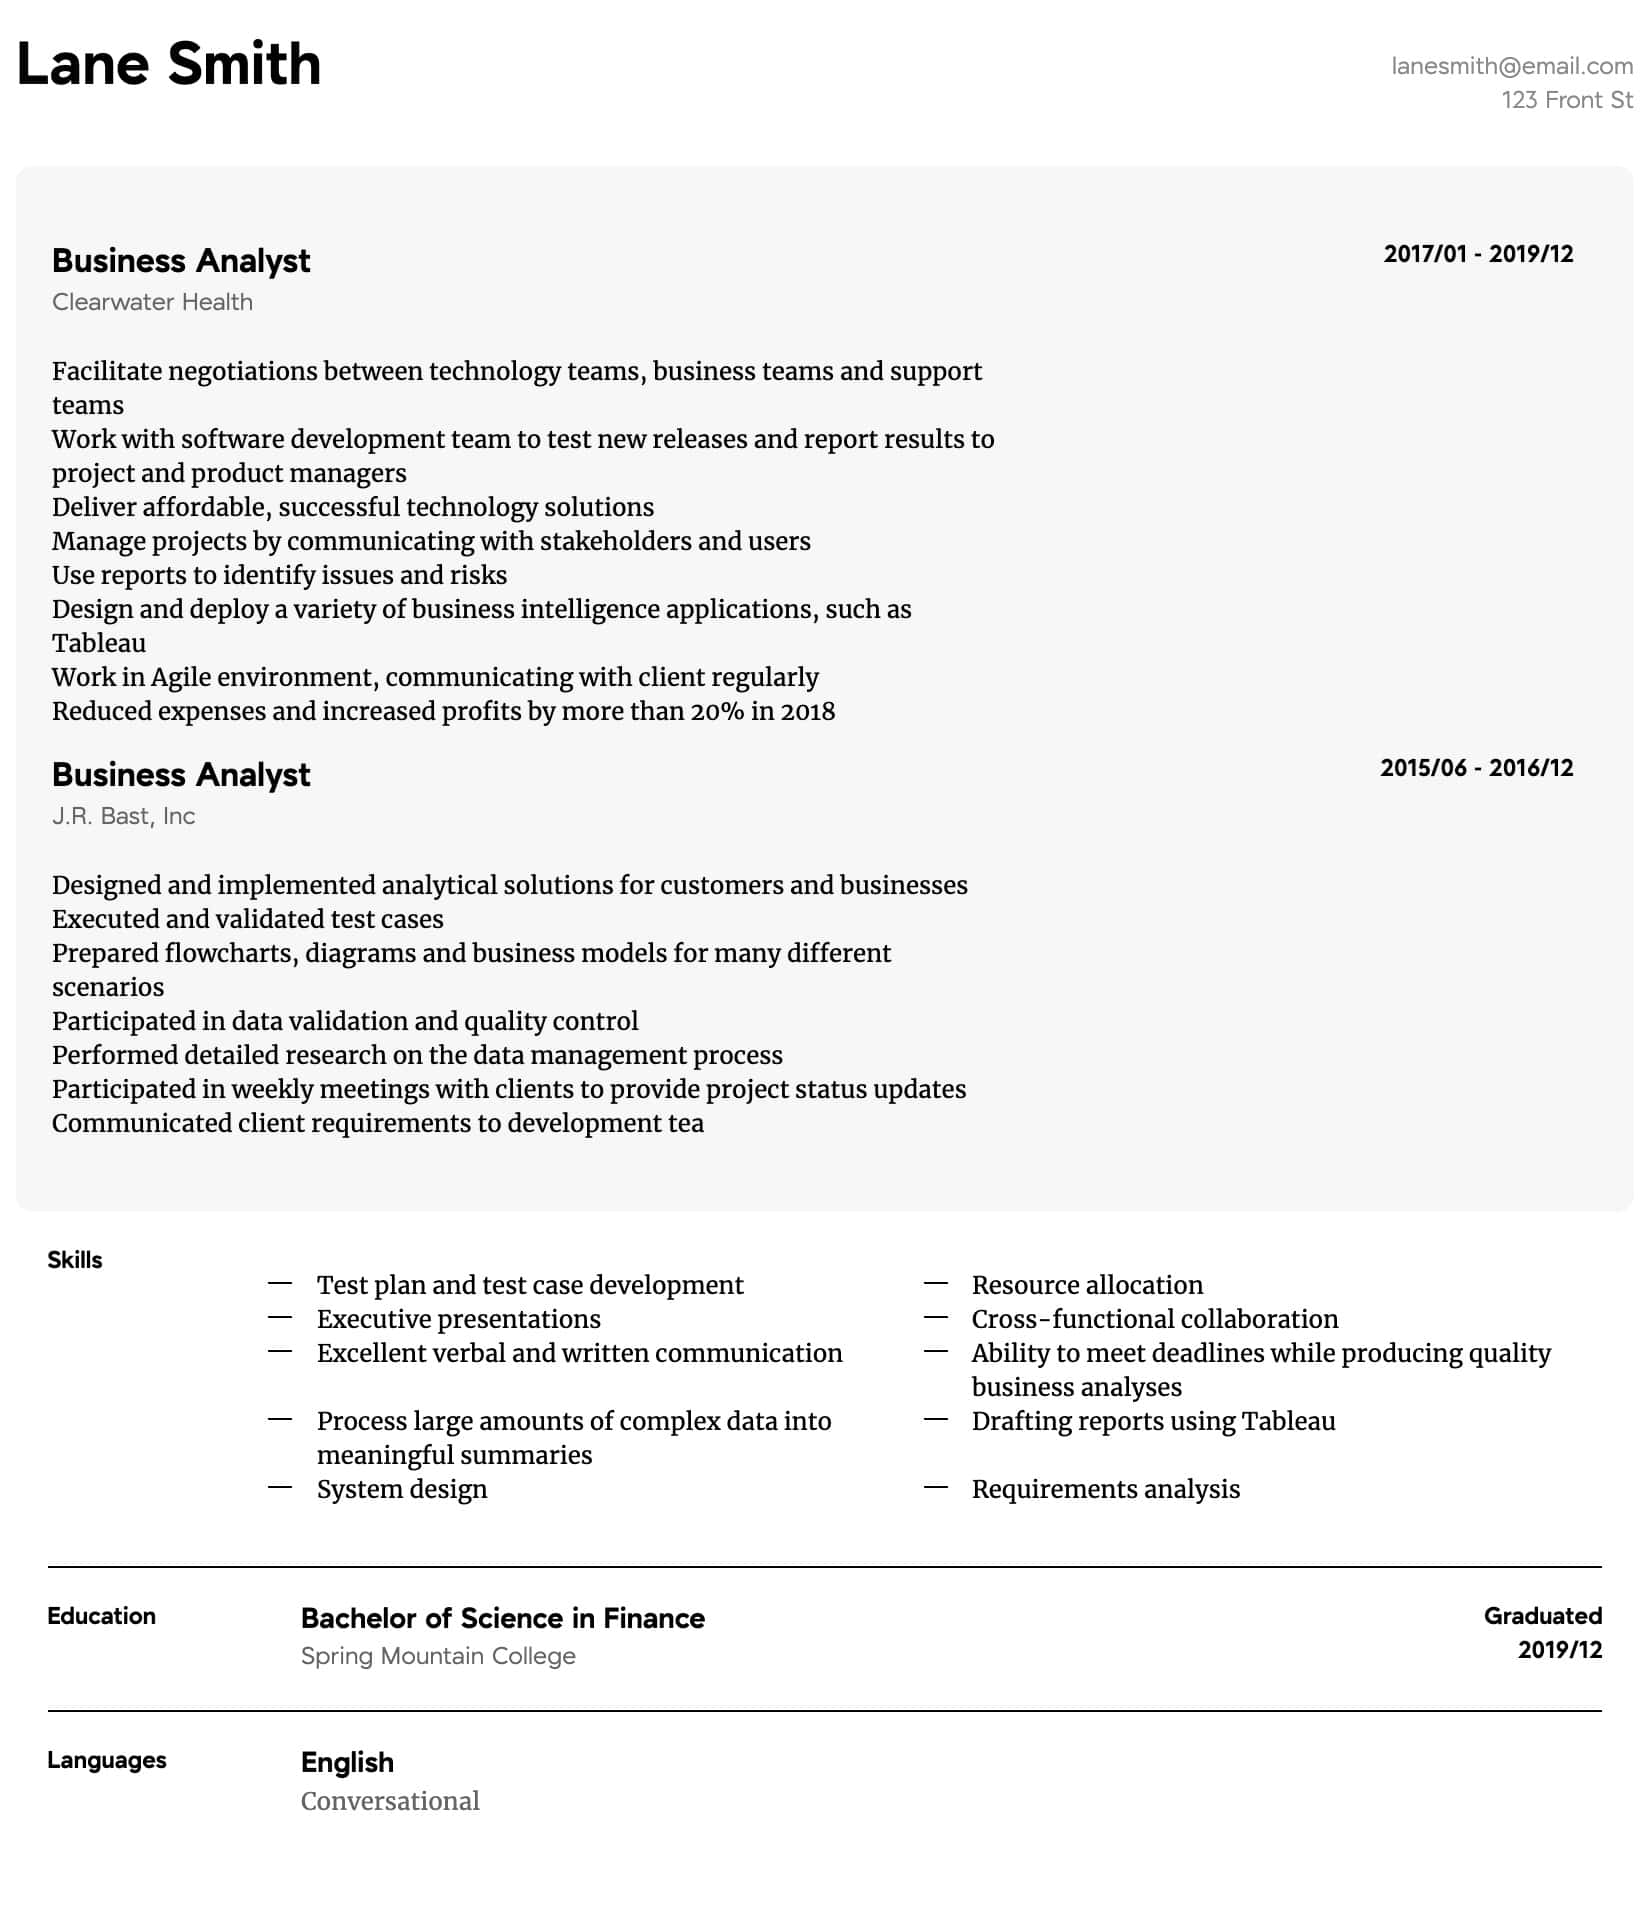 business analyst resume samples all experience levels test data management intermediate Resume Test Data Management Resume